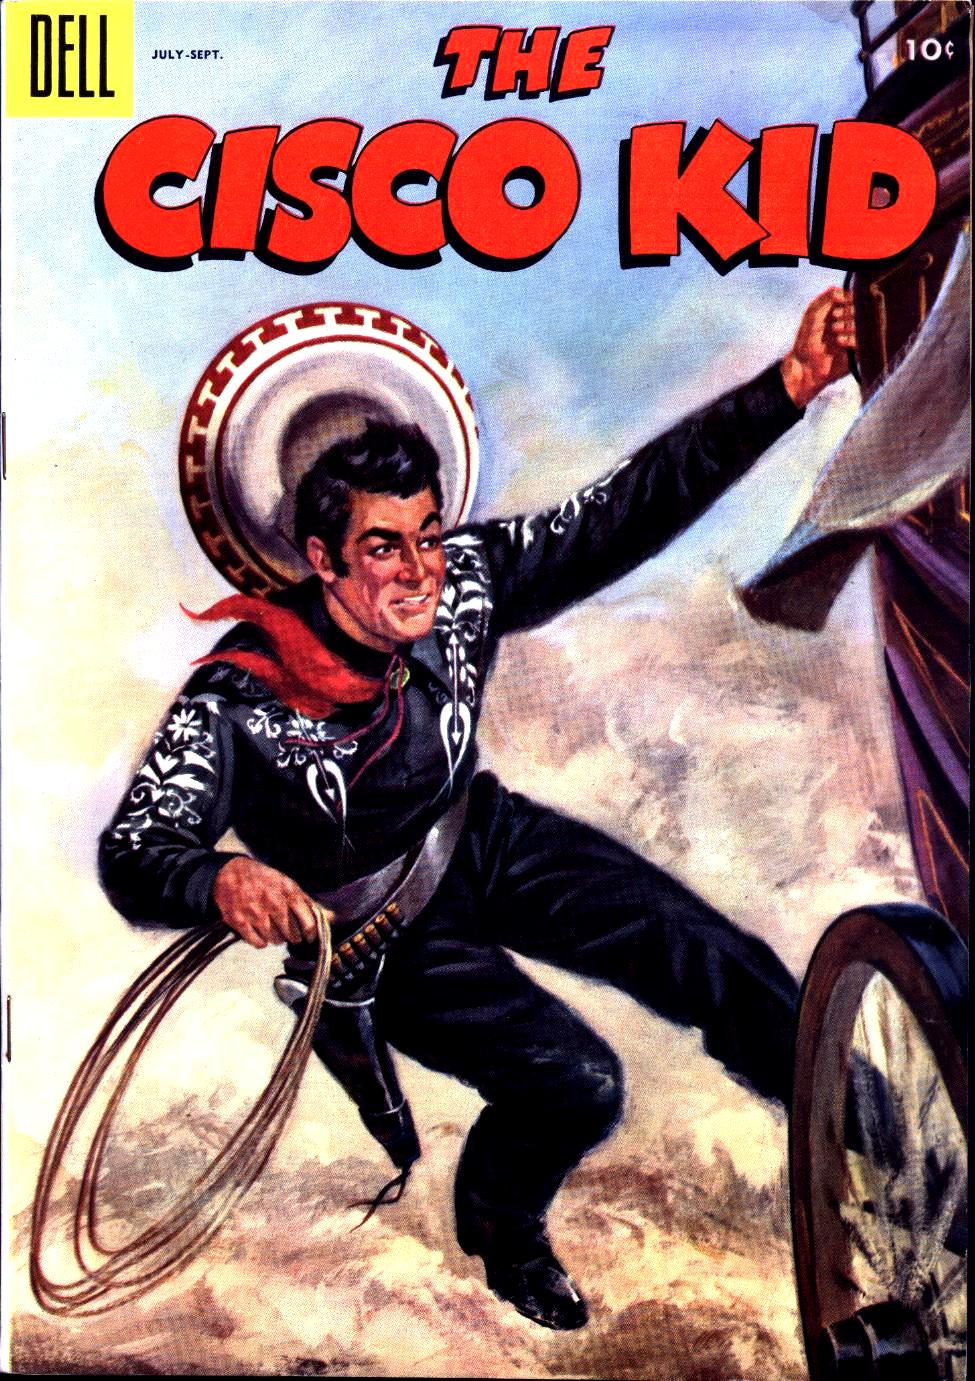 To My Knowledge The Cisco Kid Was First Television Series Filmed In Color Beginning 1950 This Is A Black And White Print Of Original Opening